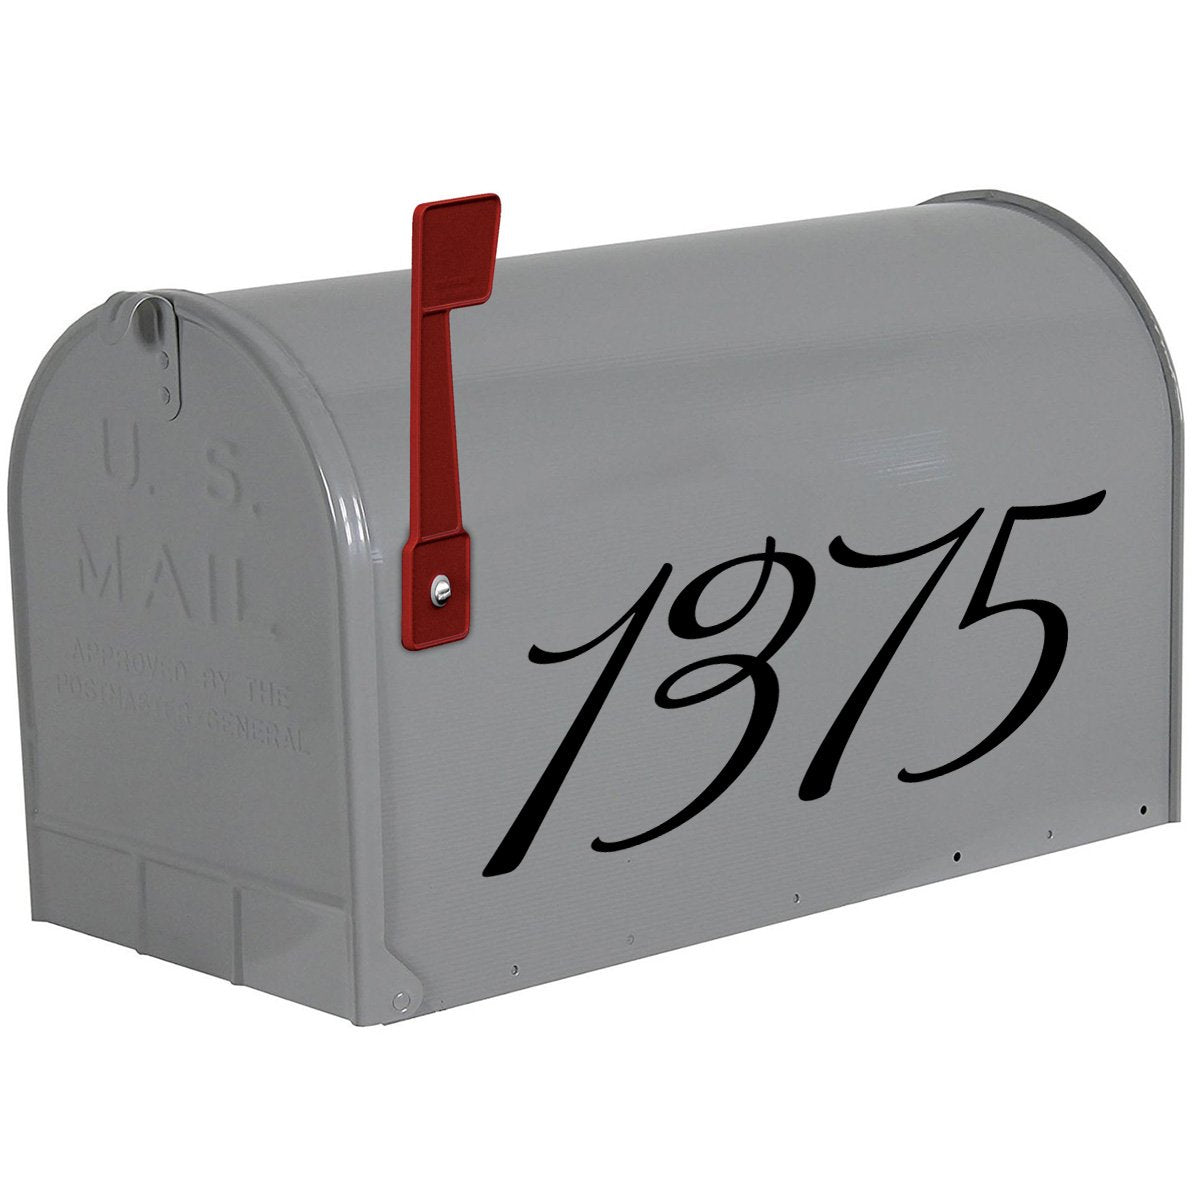 VWAQ Personalized Mailbox Address Decals - Custom House Numbers Vinyl - CMB24 - VWAQ Vinyl Wall Art Quotes and Prints